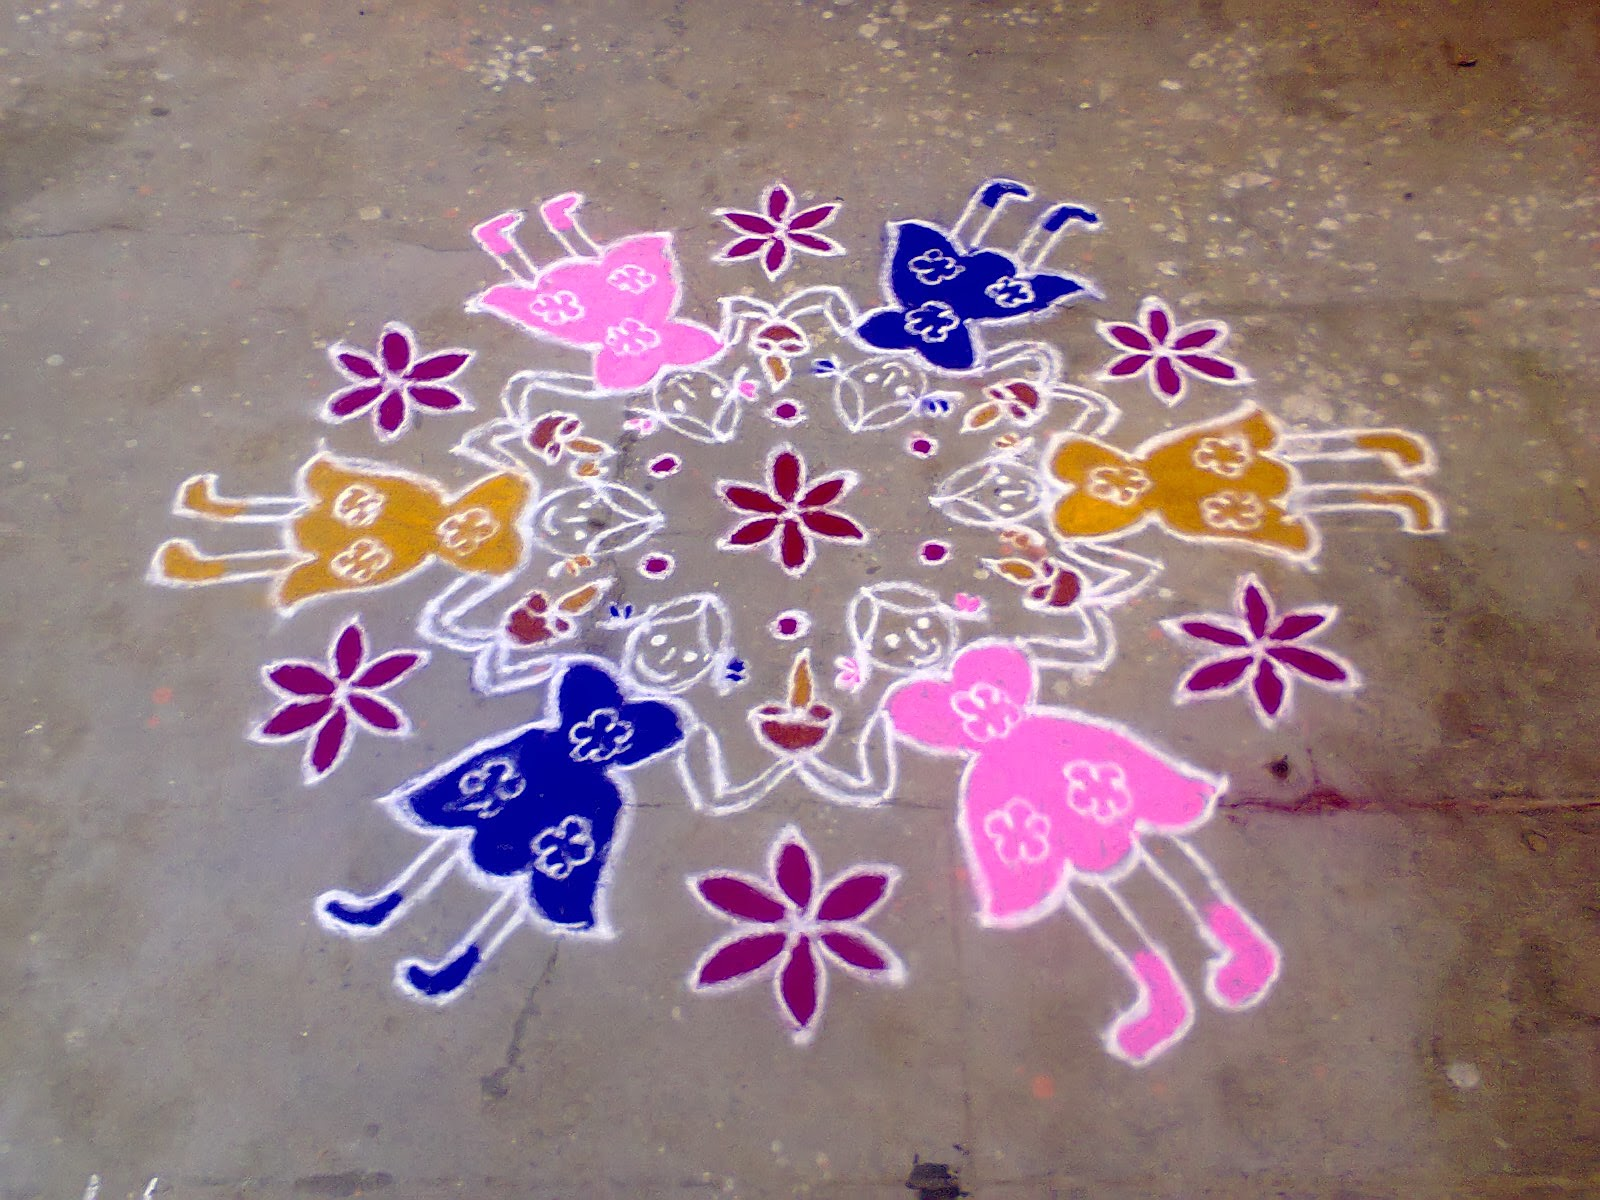 womens_day_celebration_rangoli